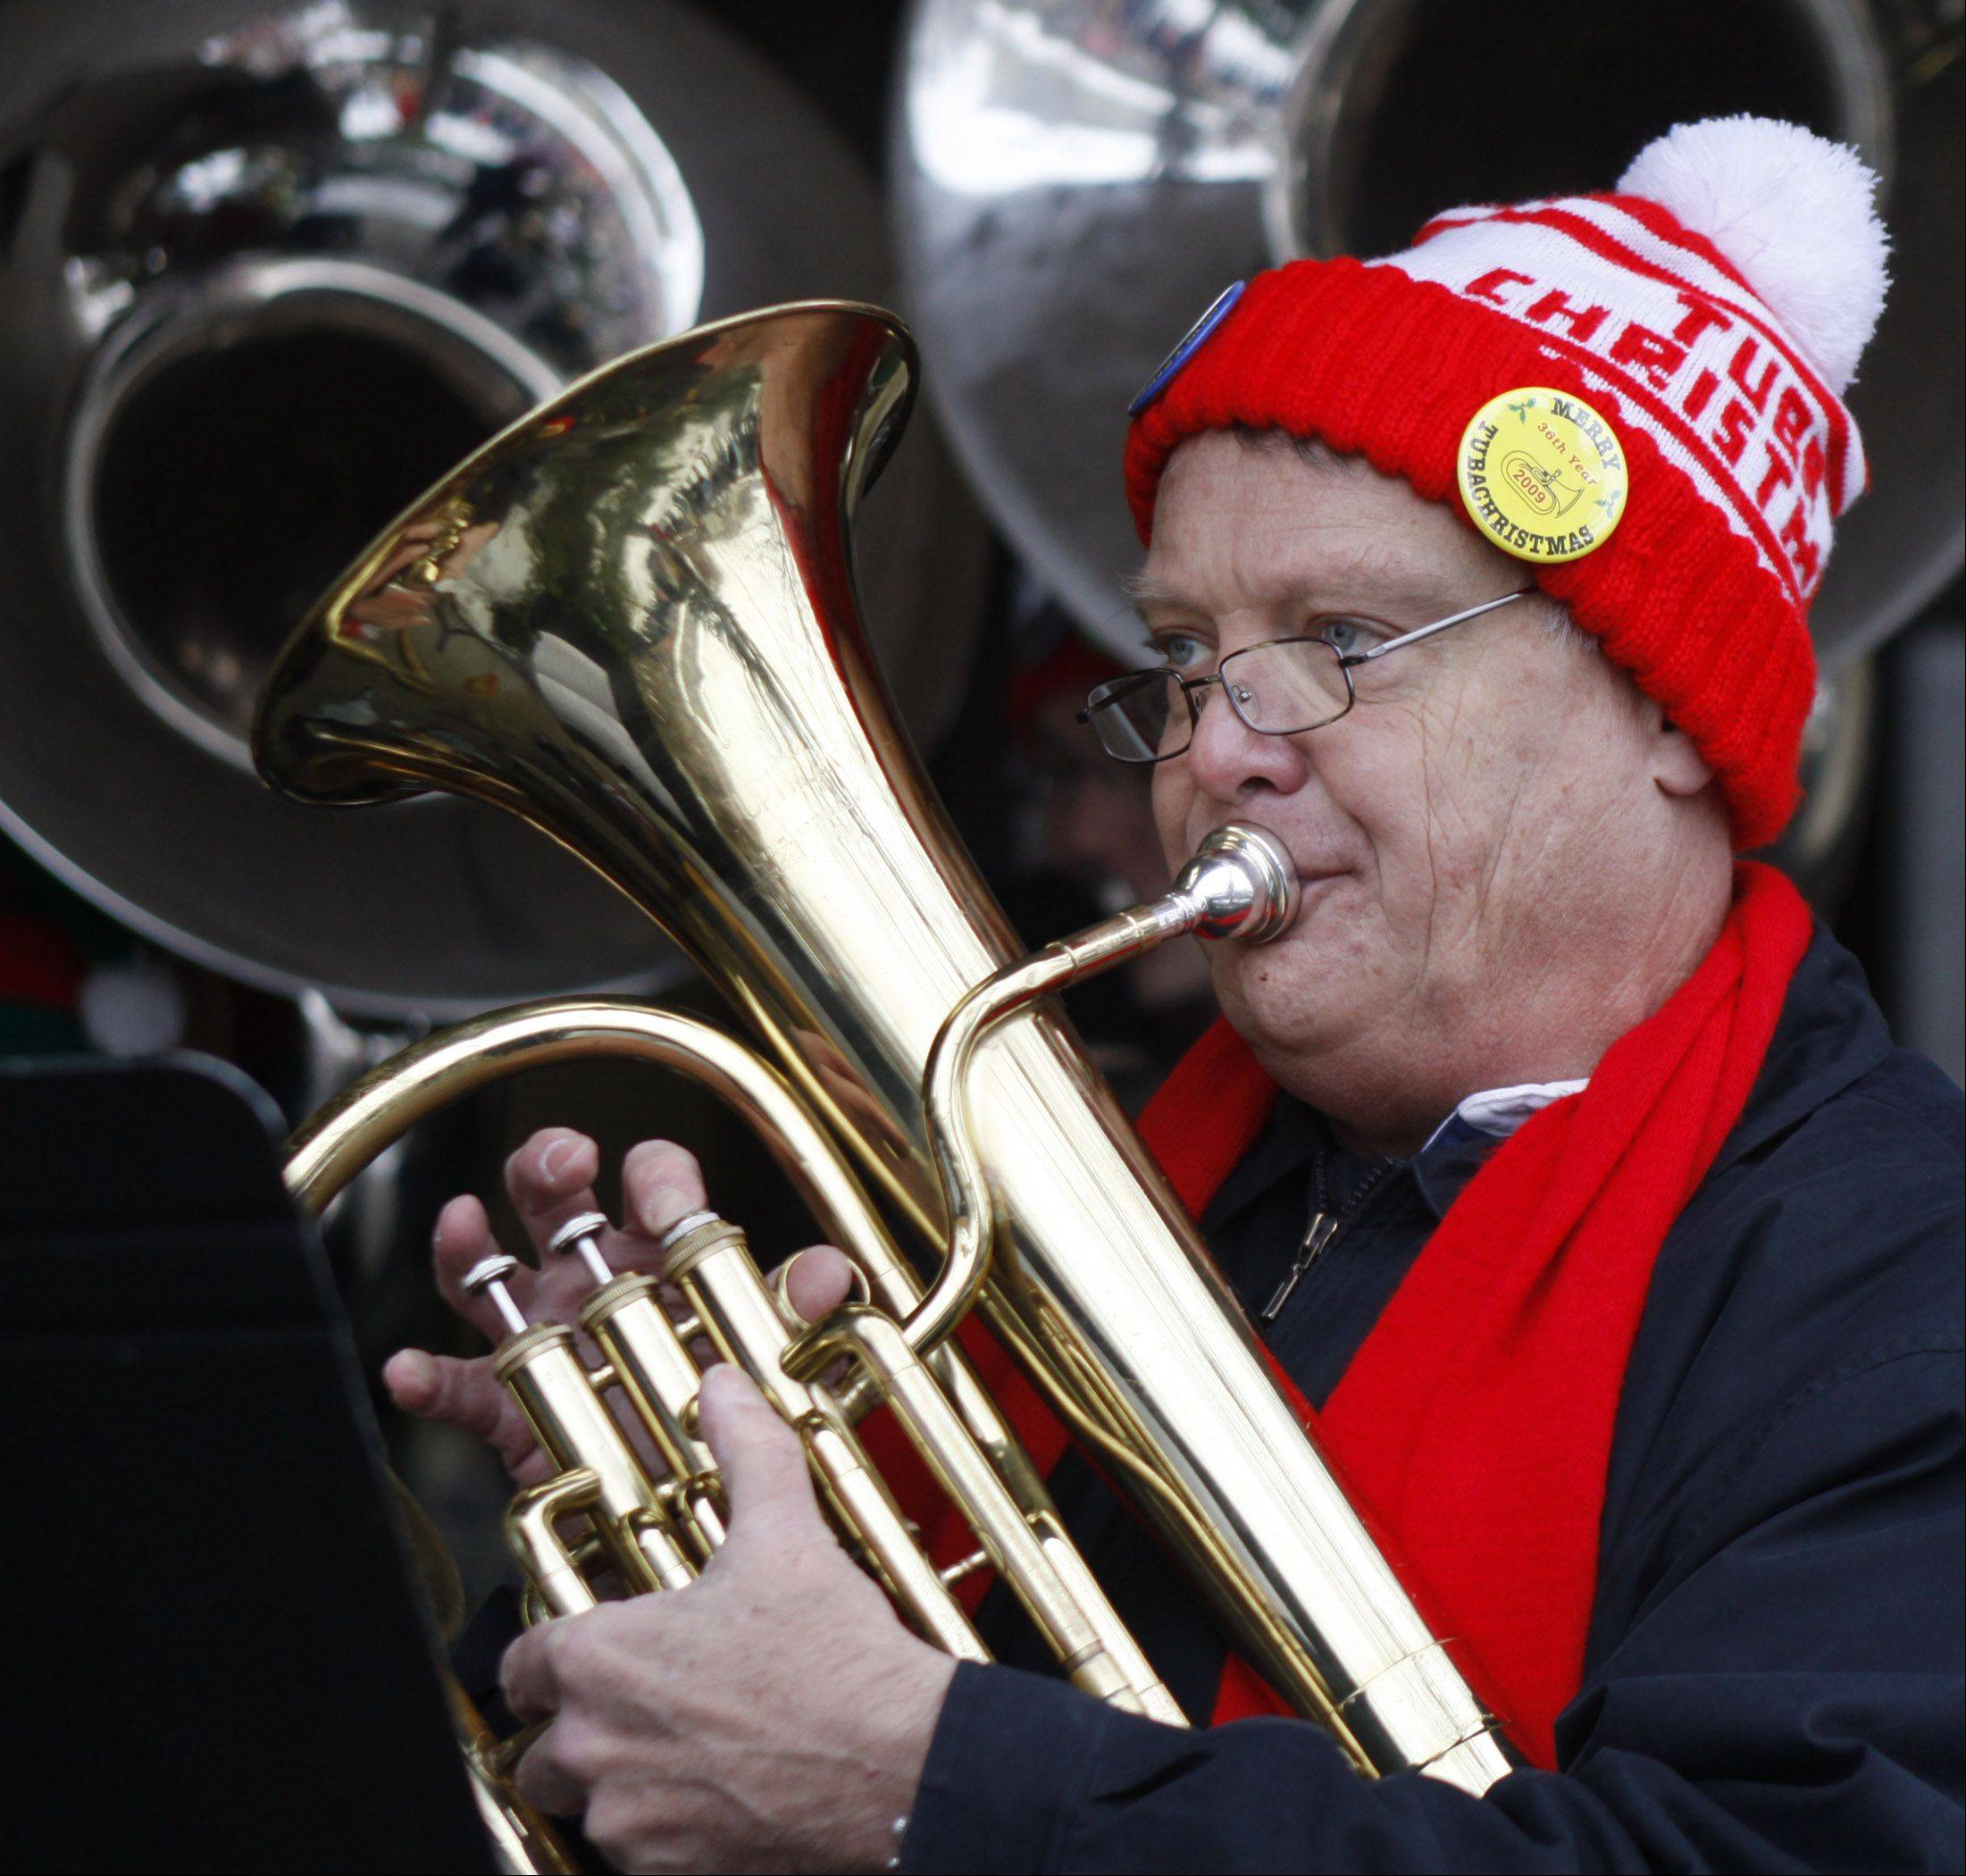 Musicians from age 10 through 83 performed in last year's Tuba Christmas concerts in Naperville and Aurora.